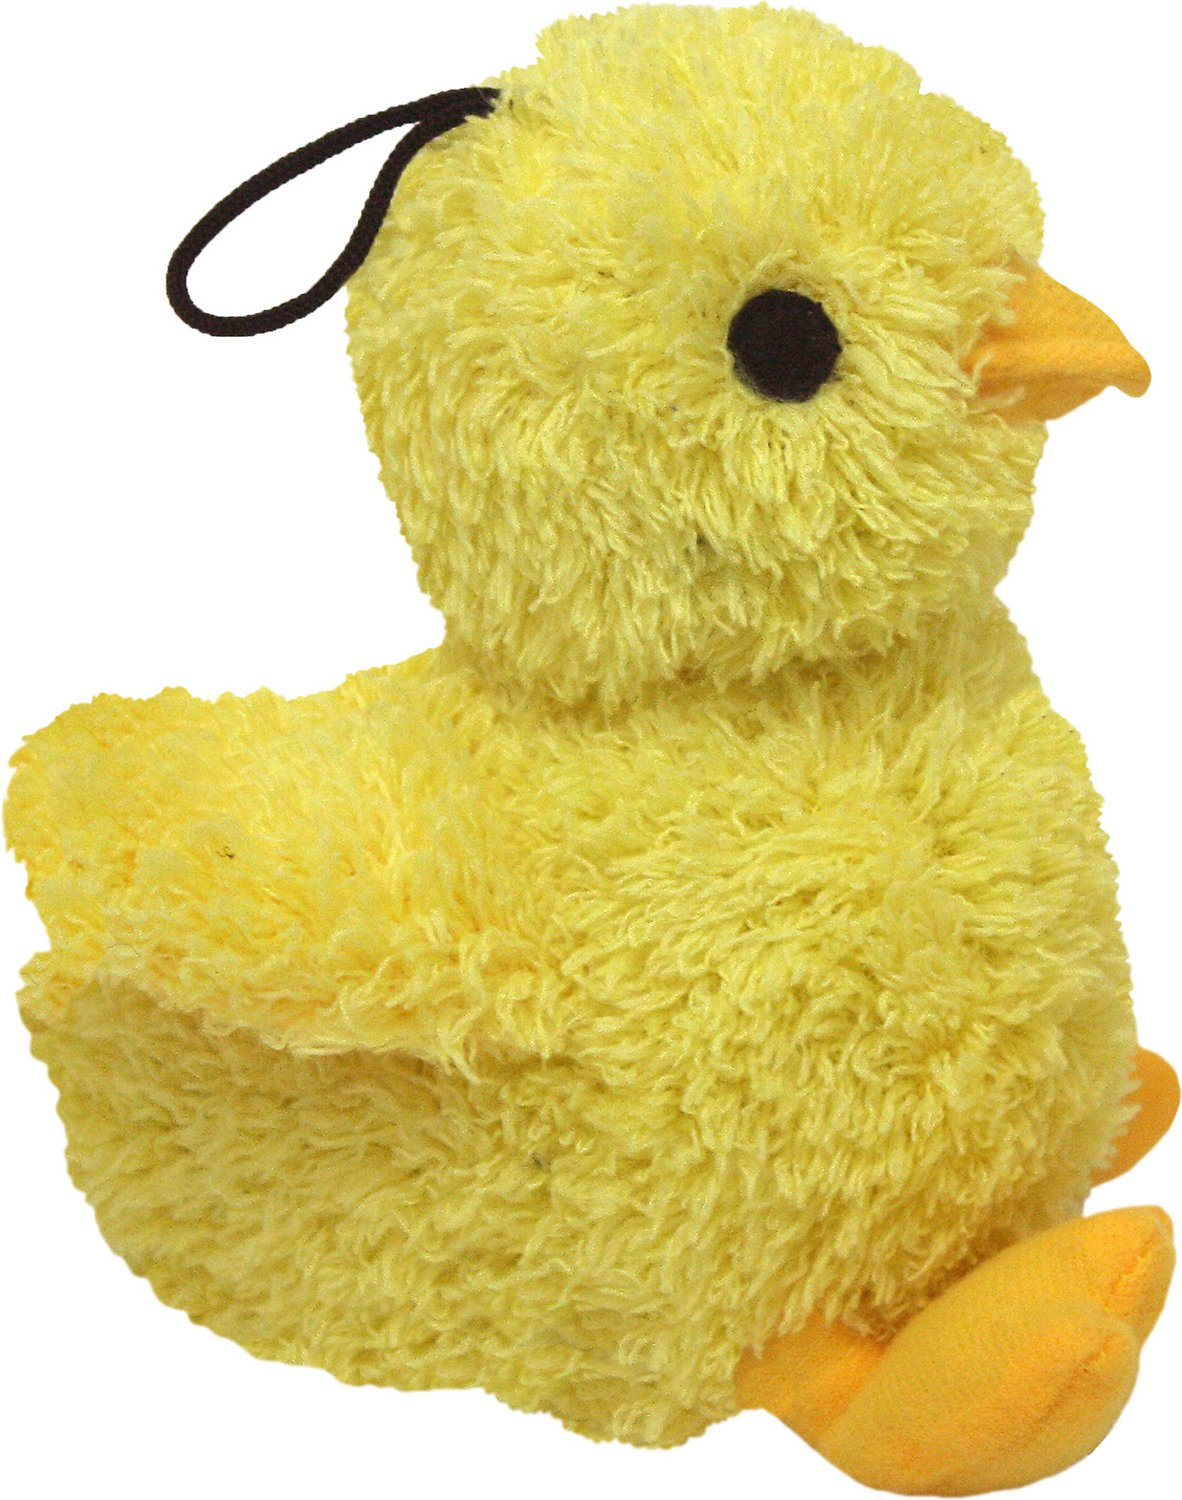 Multipet Look Whos Talking Chick Plush Dog Toy